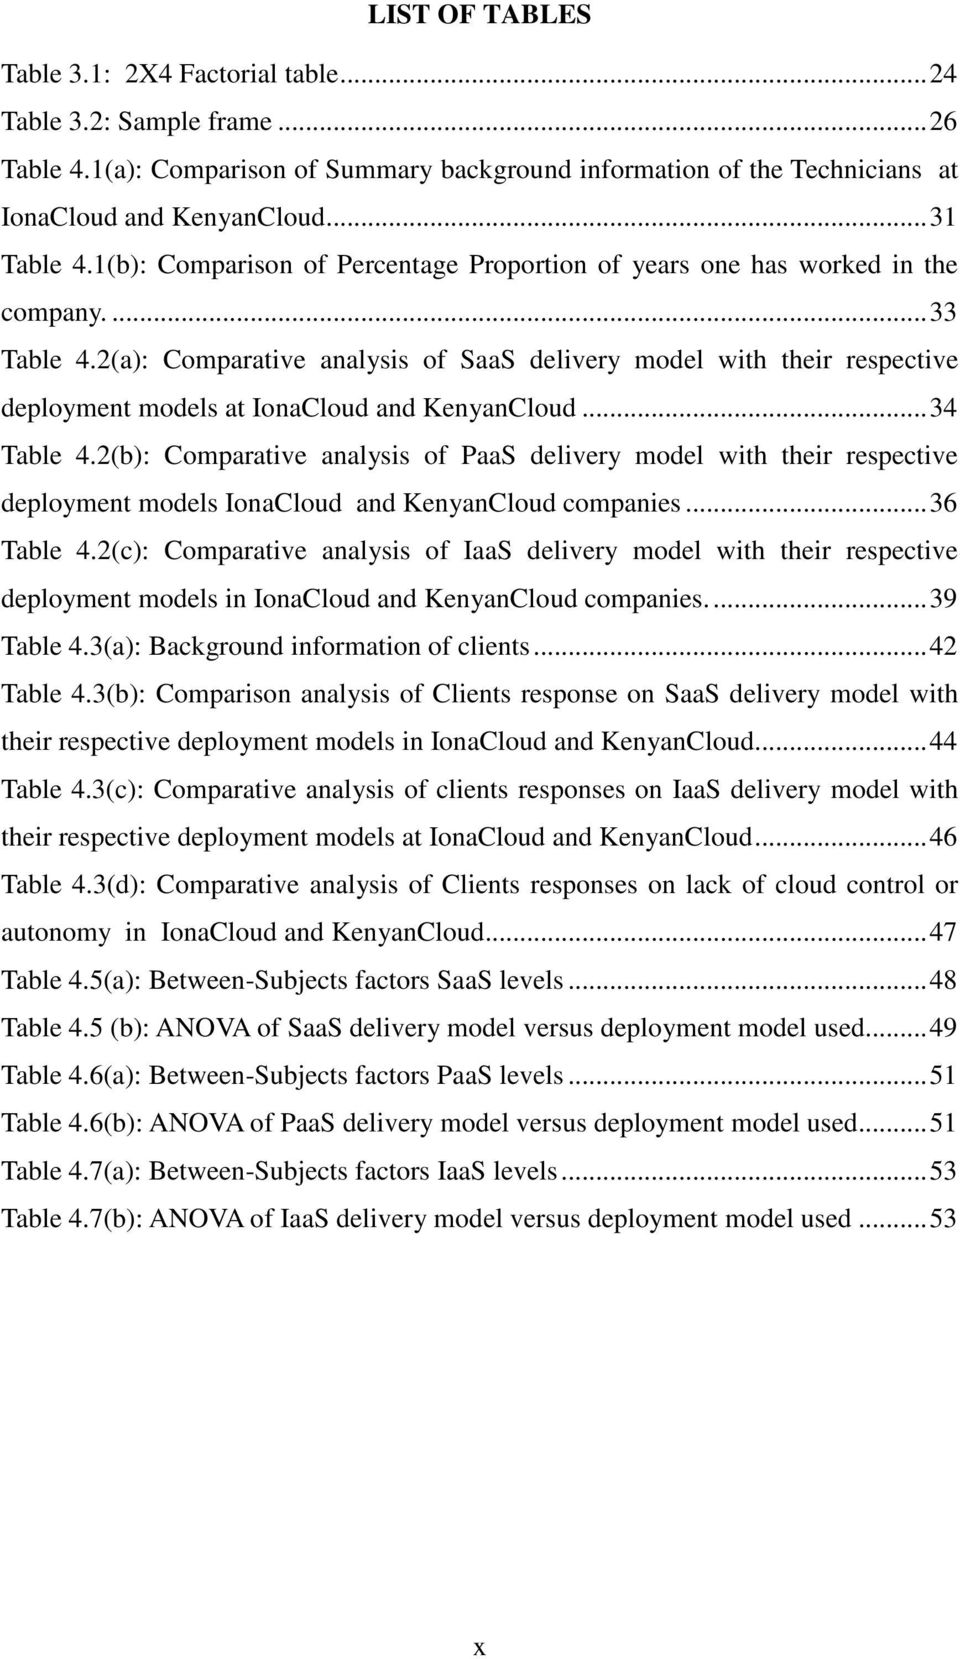 2(a): Comparative analysis of SaaS delivery model with their respective deployment models at IonaCloud and KenyanCloud...34 Table 4.